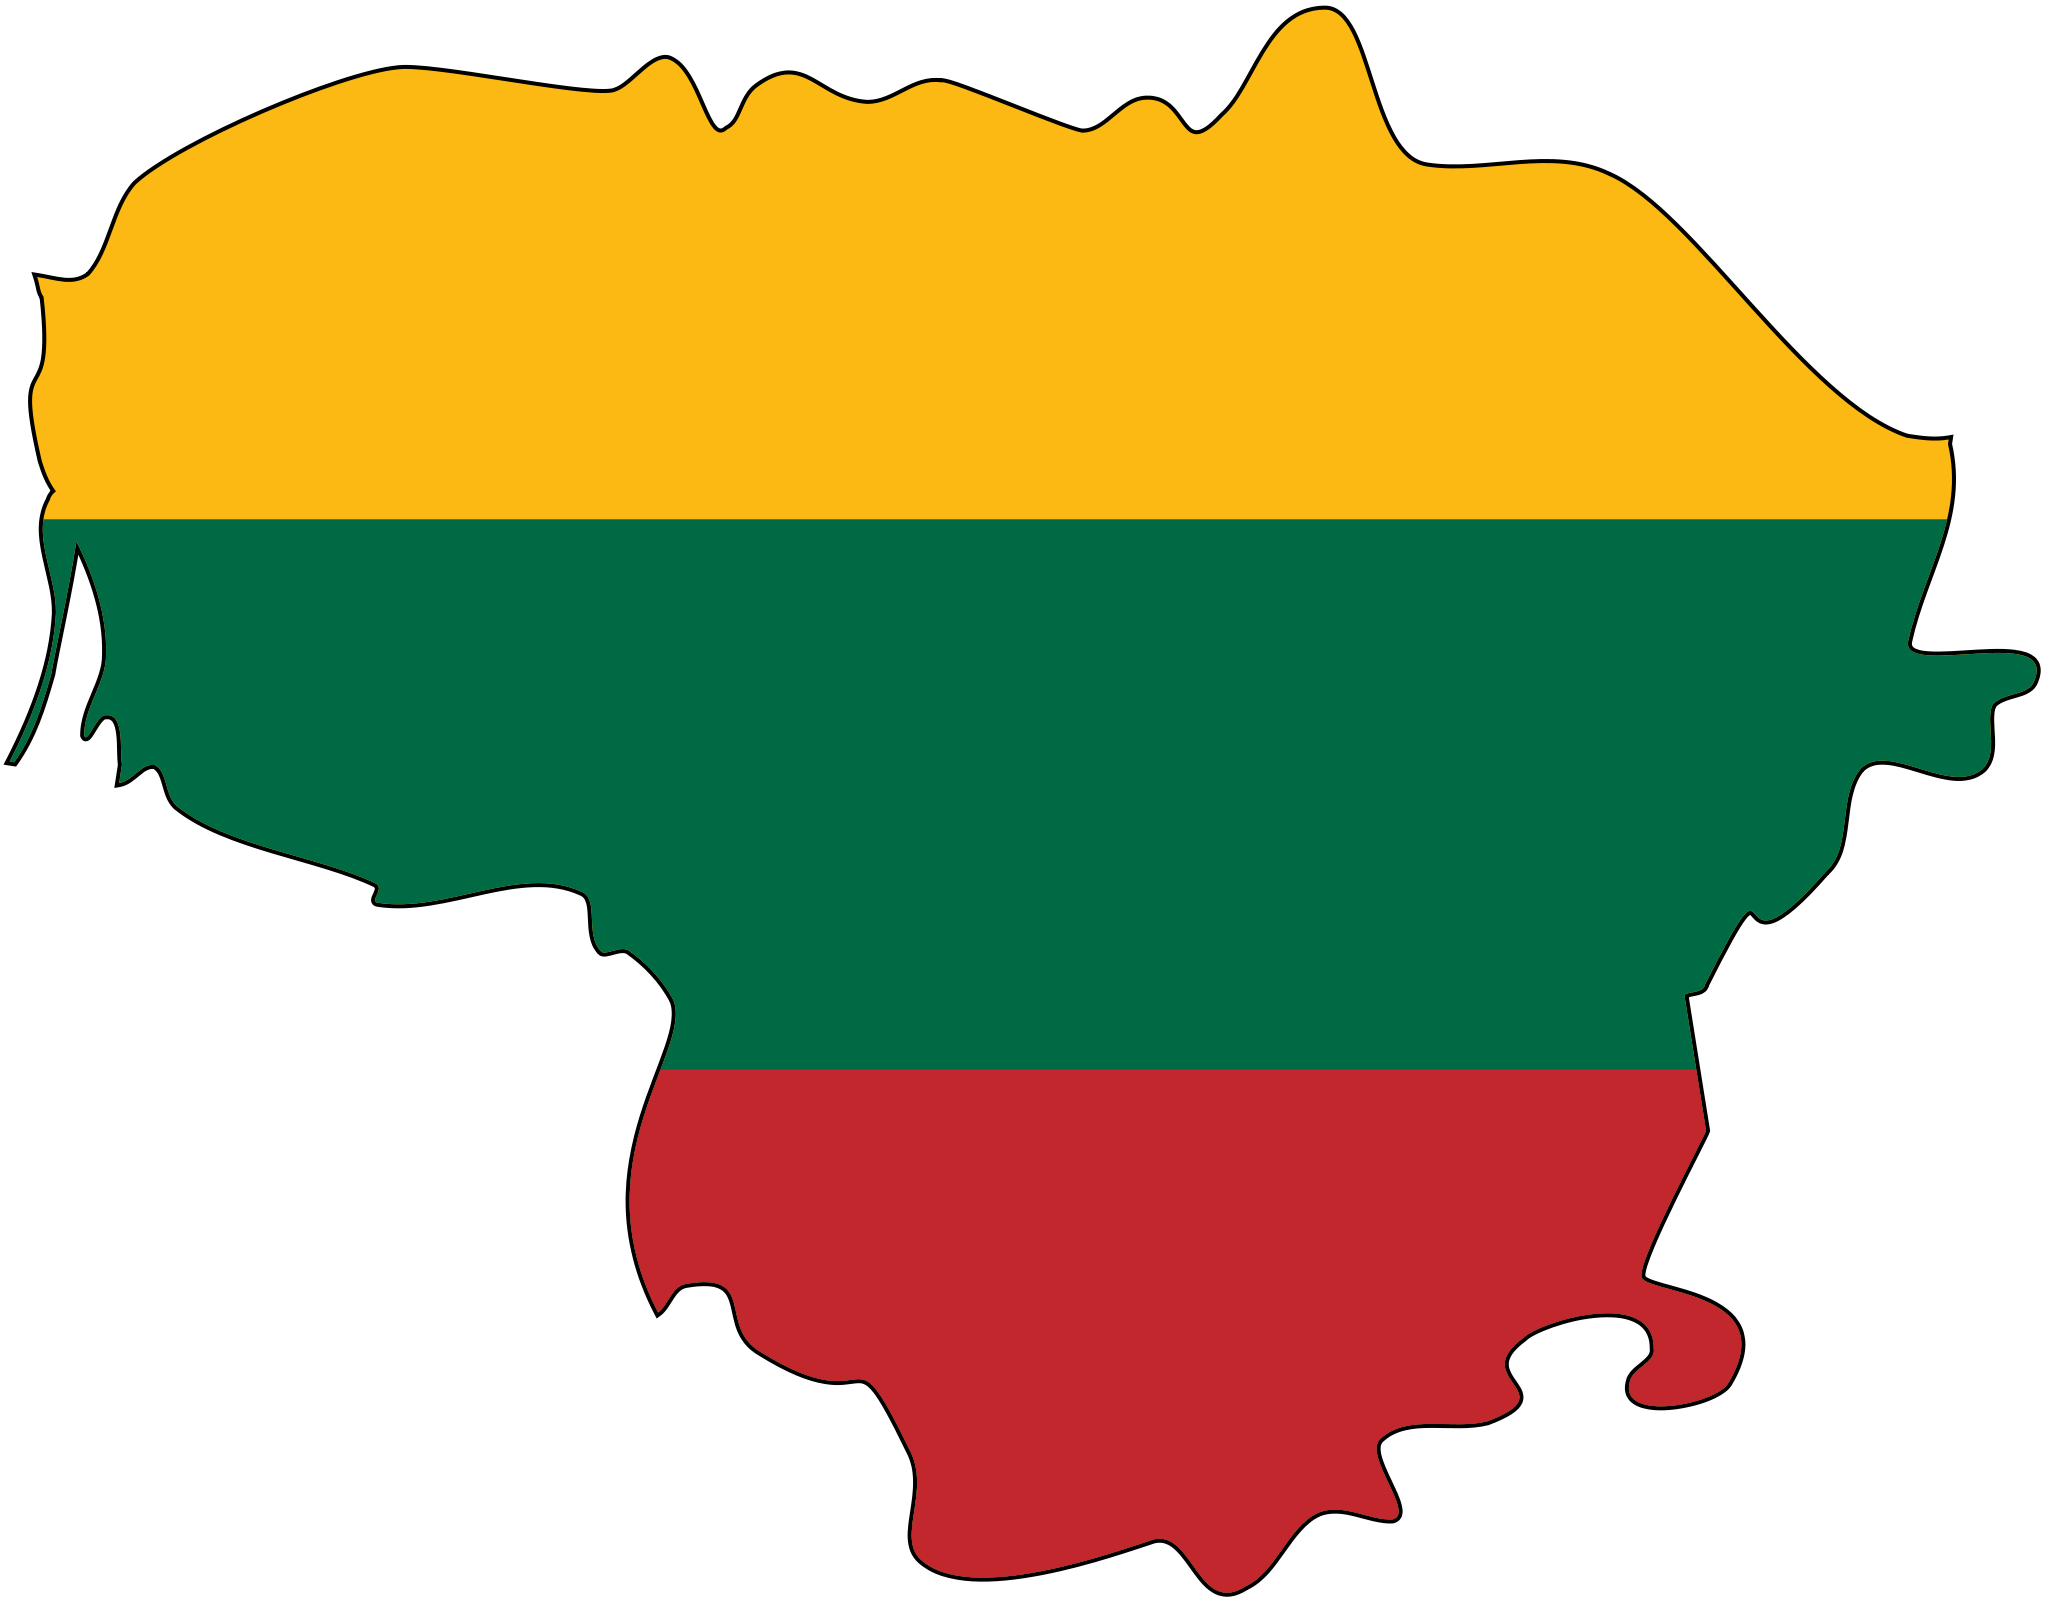 About Lithuania - MedLT